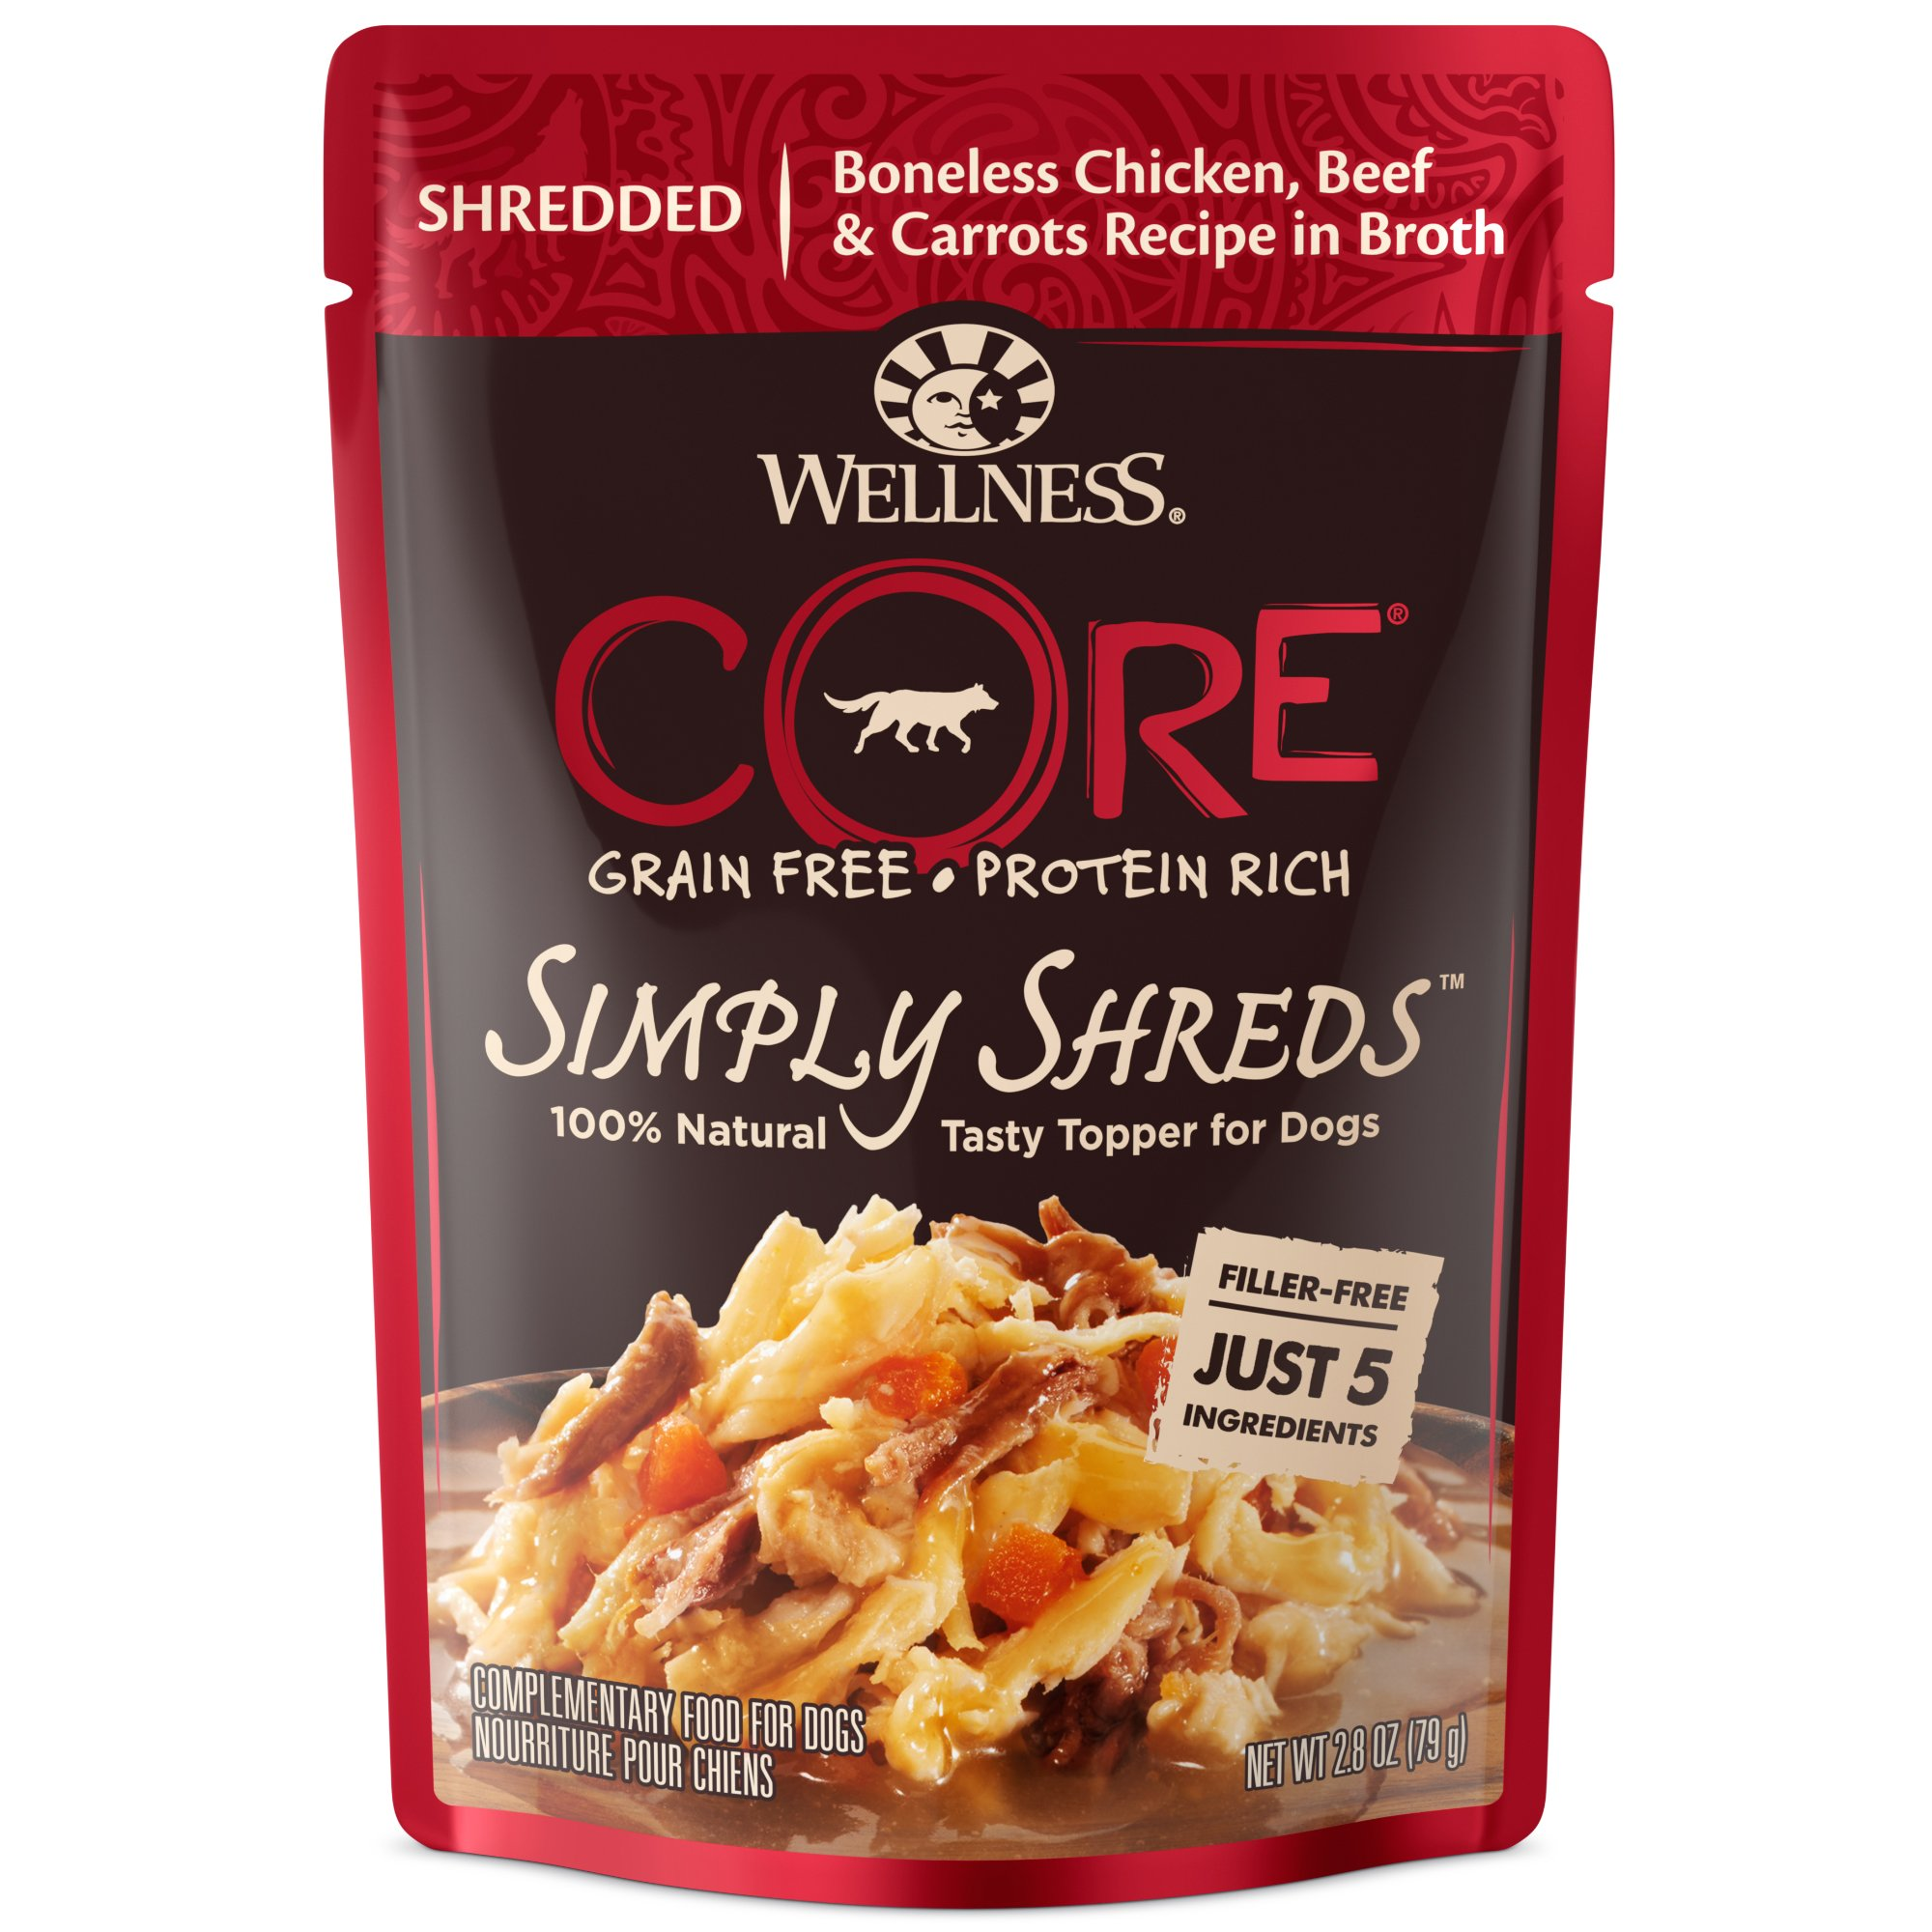 Wellness Core Simply Shreds Natural Grain Free Wet Dog Food Mixer Or Topper, Chicken, Beef & Carrots, 2.8-Ounce Pouch (Pack of 12) by Wellness Natural Pet Food